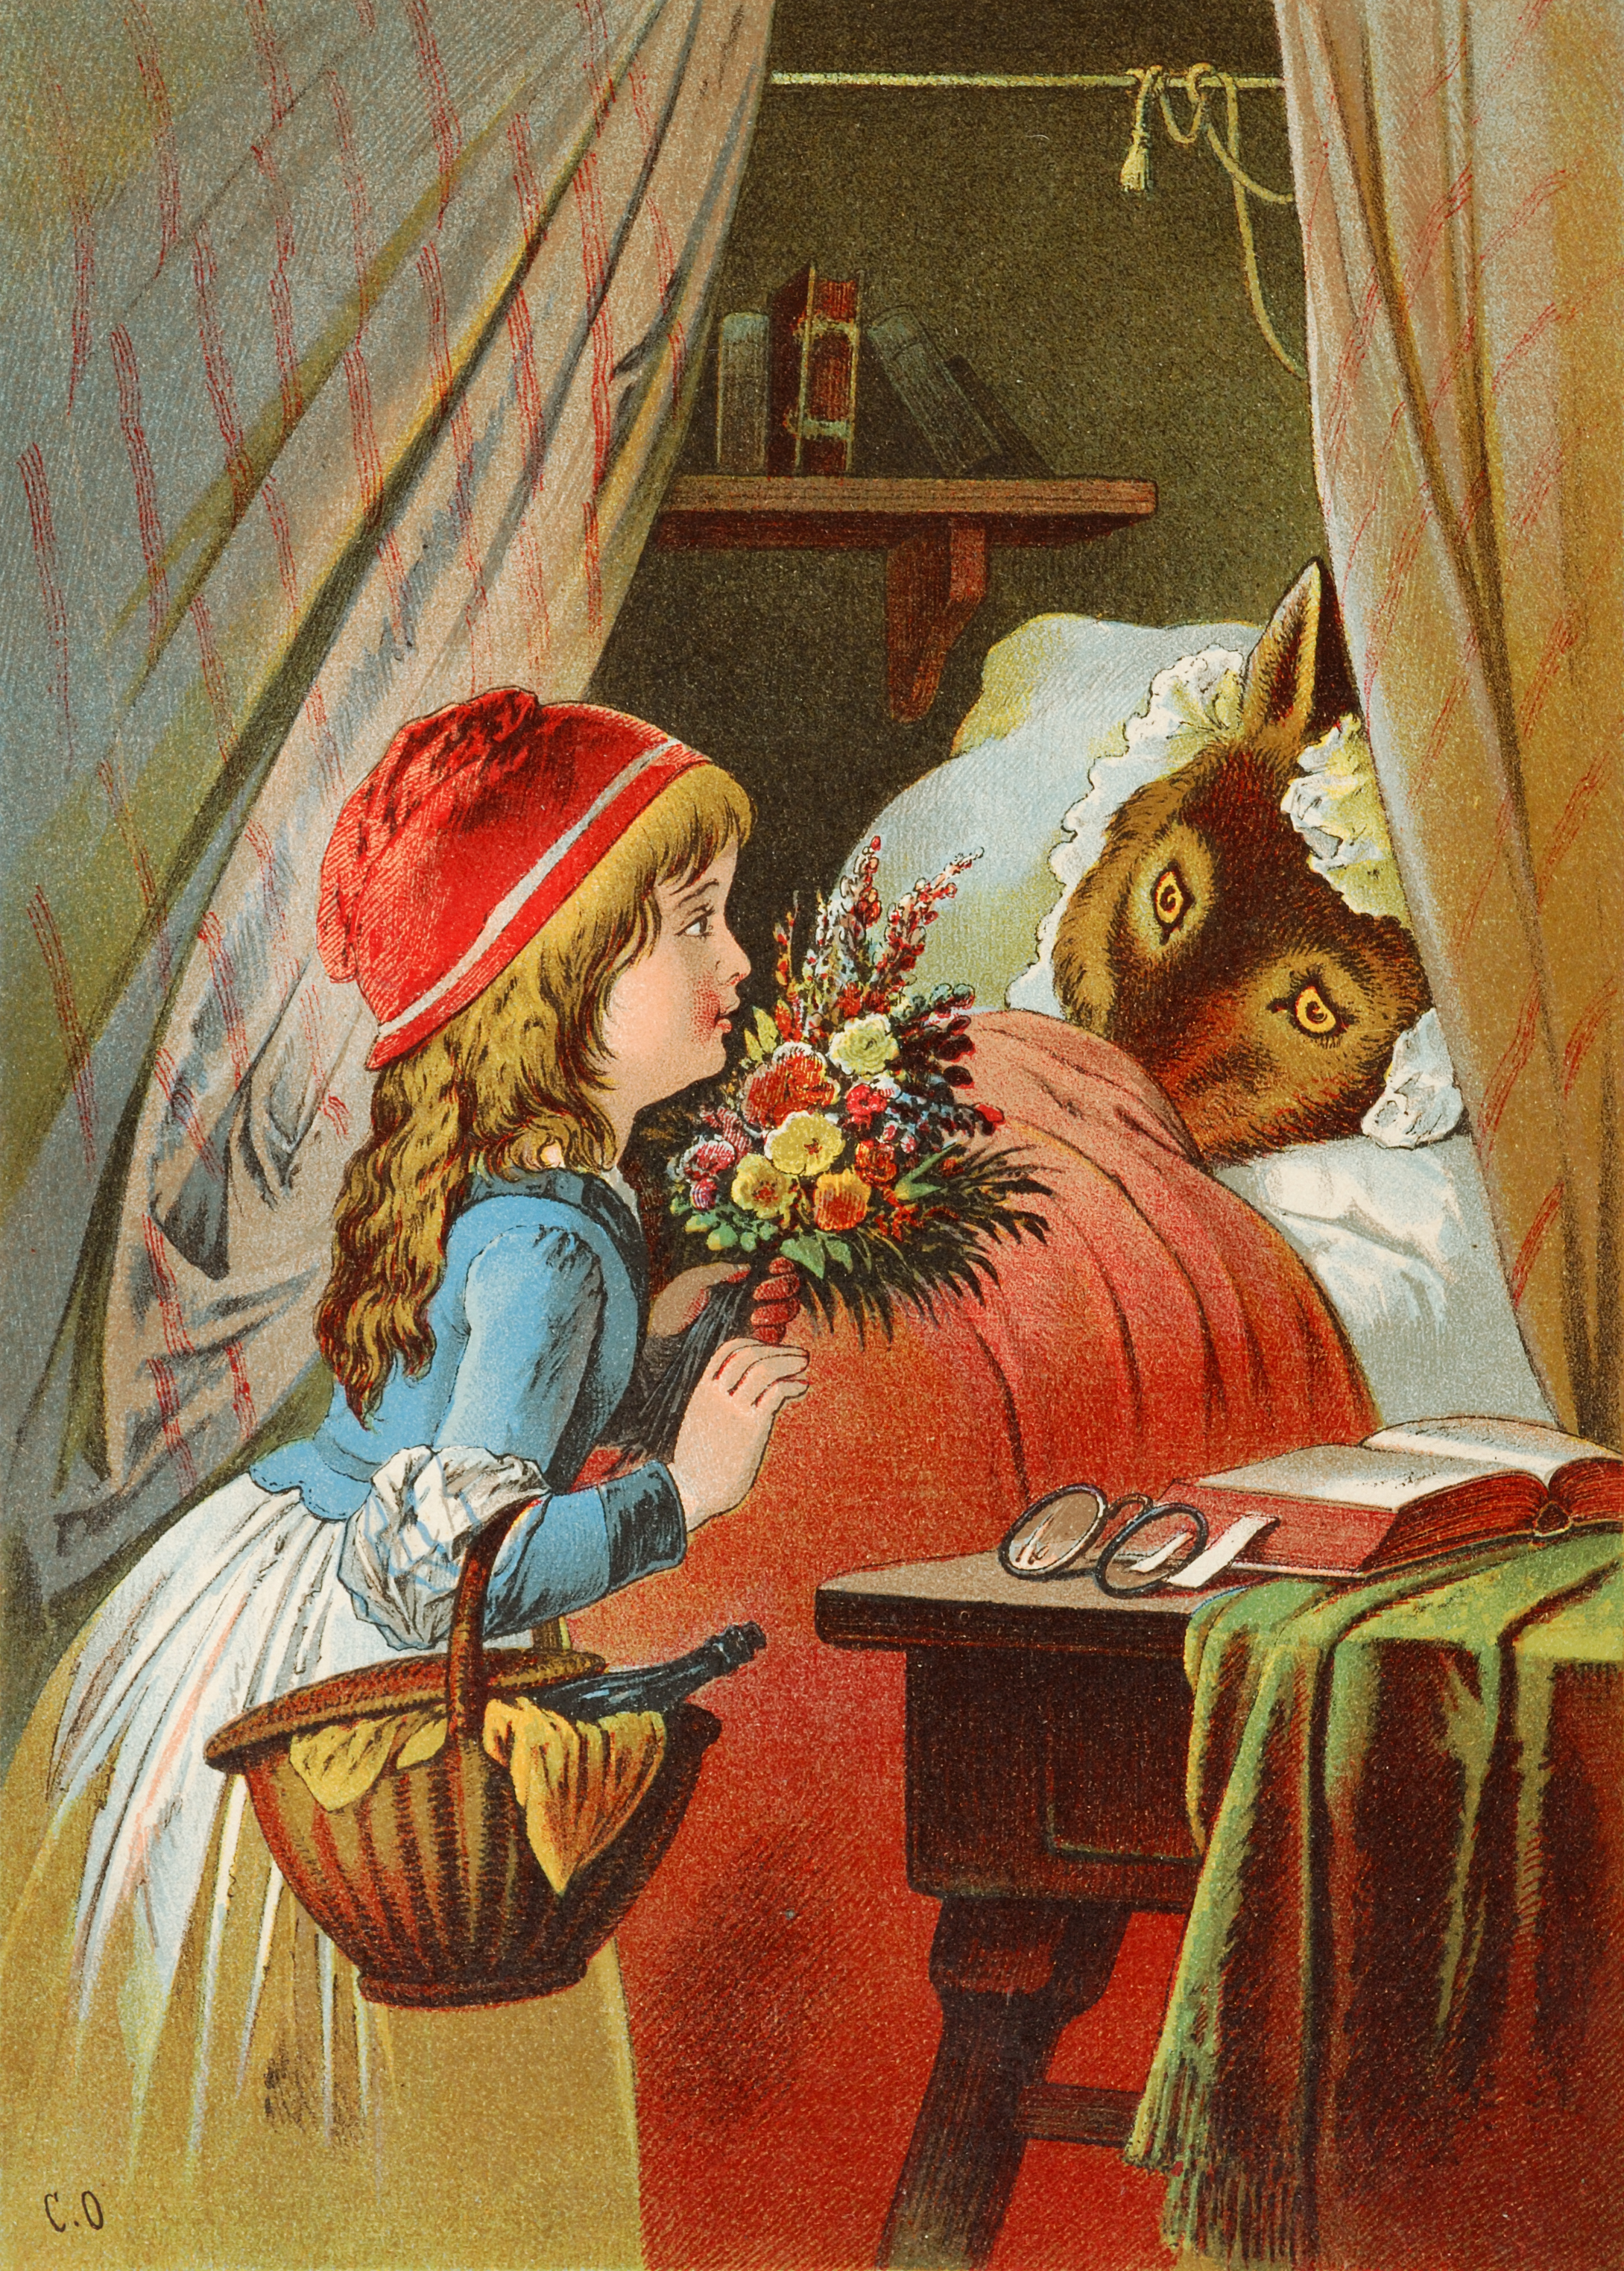 texts often represent women as victims in a patriarchal society english little red riding hood illustration by carl offterdinger deutsch rotkatildecurrenppchen illustration